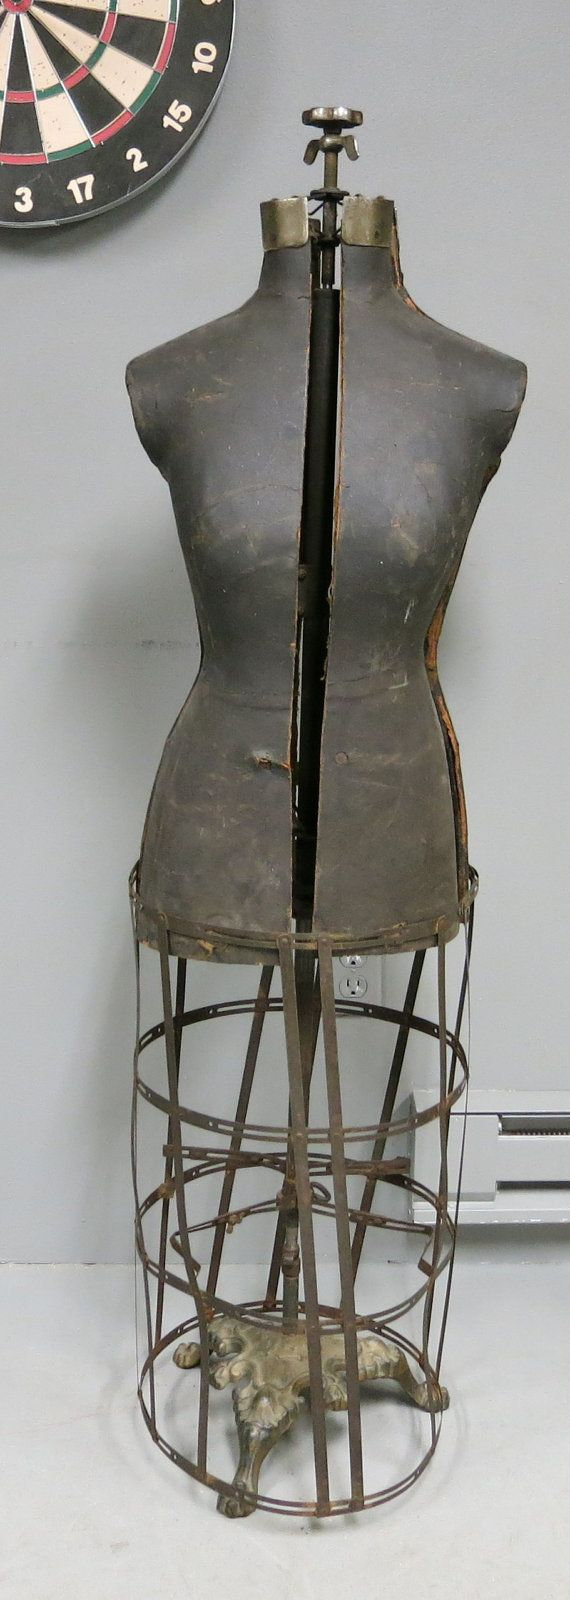 774 best images about vintage dress forms on pinterest antiques painted cottage and brocante - Cb industry chair ...